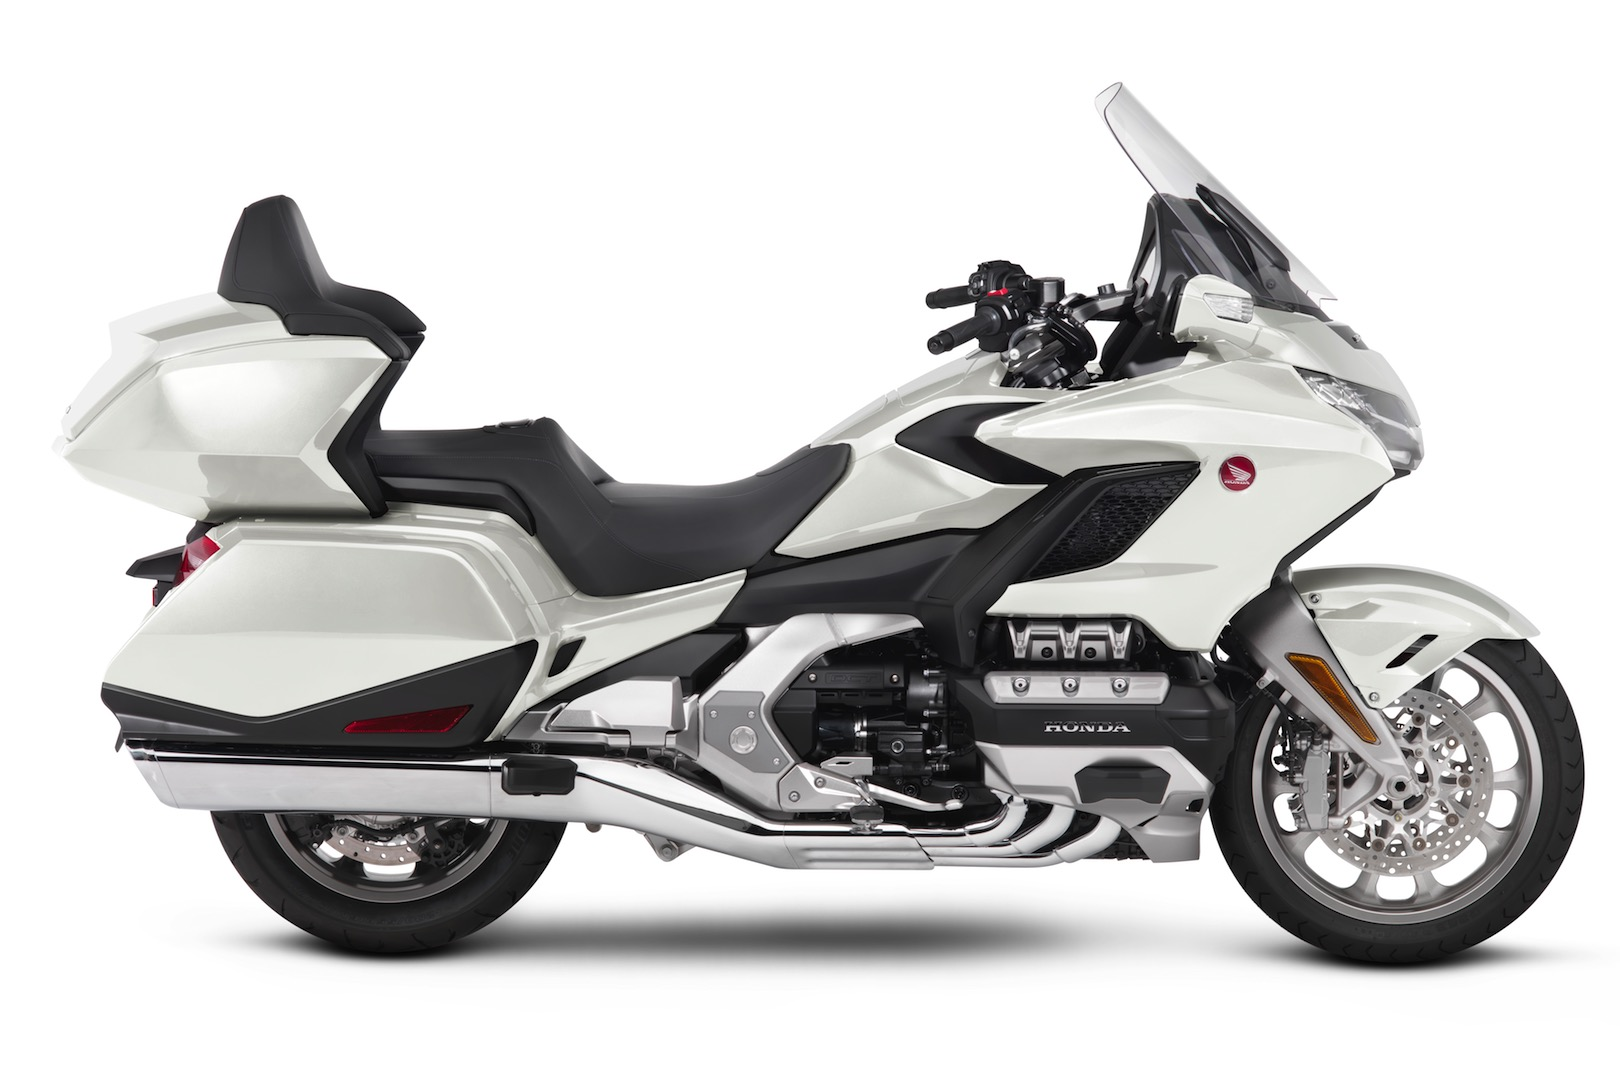 2018 honda gold wing first look 18 fast facts 2018 honda gold wing white fandeluxe Gallery